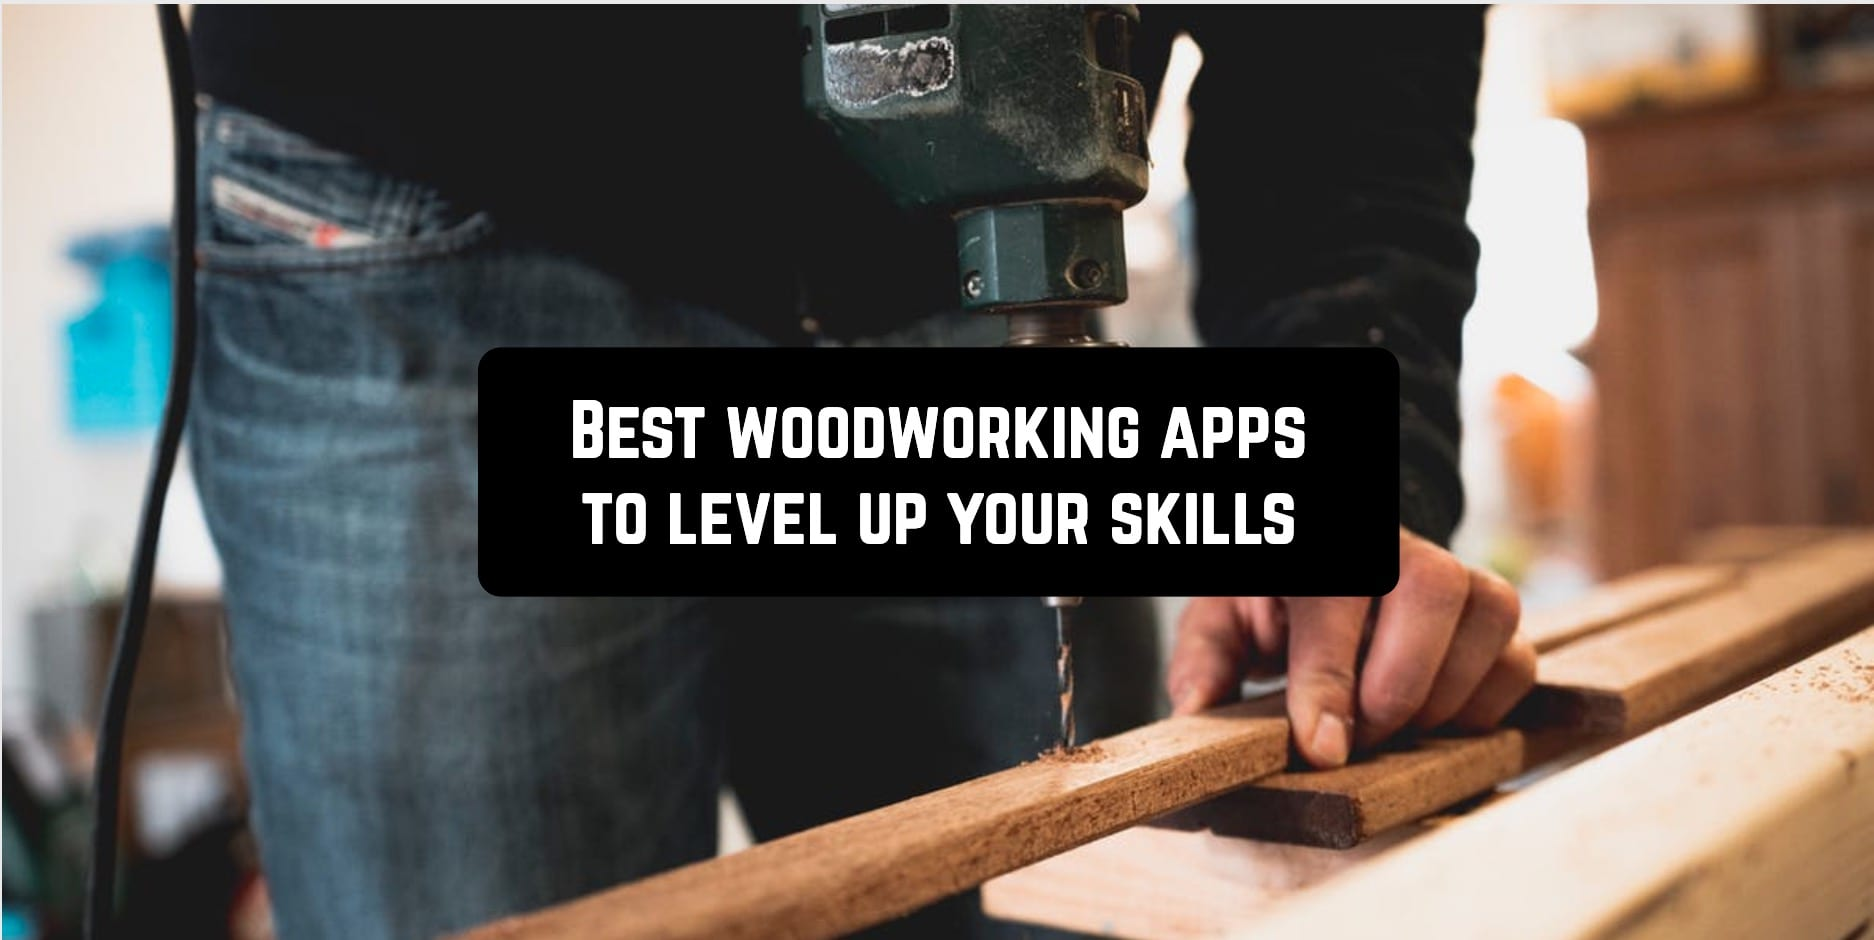 Best woodworking apps to level up your skills